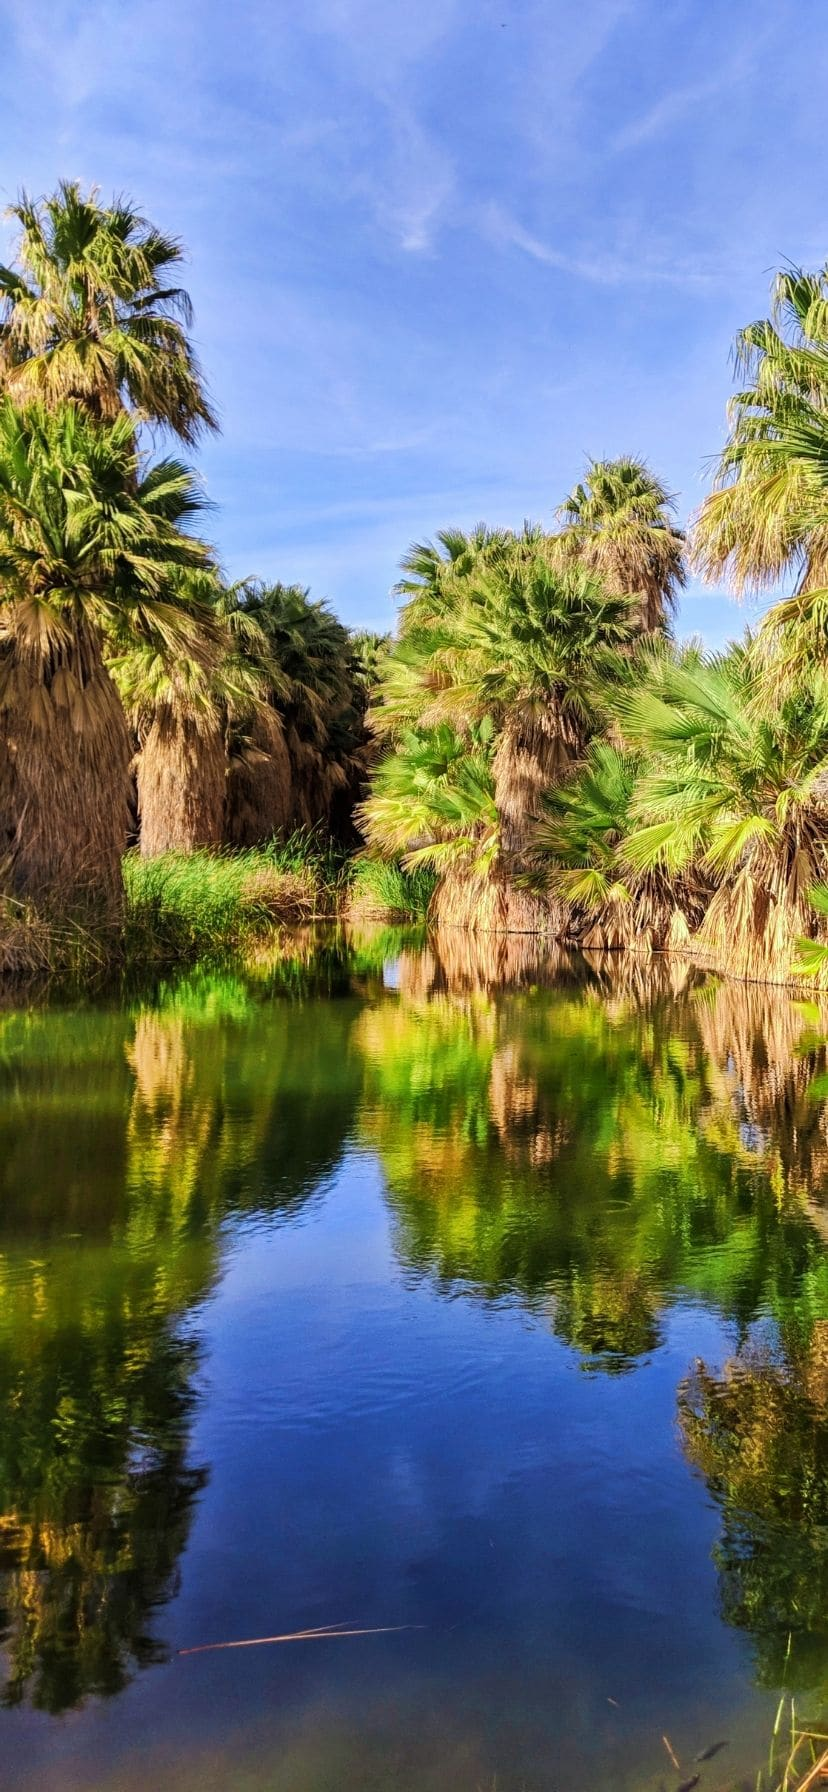 Palm reflections on pond at Coachella Valley Preserve, Palm Springs